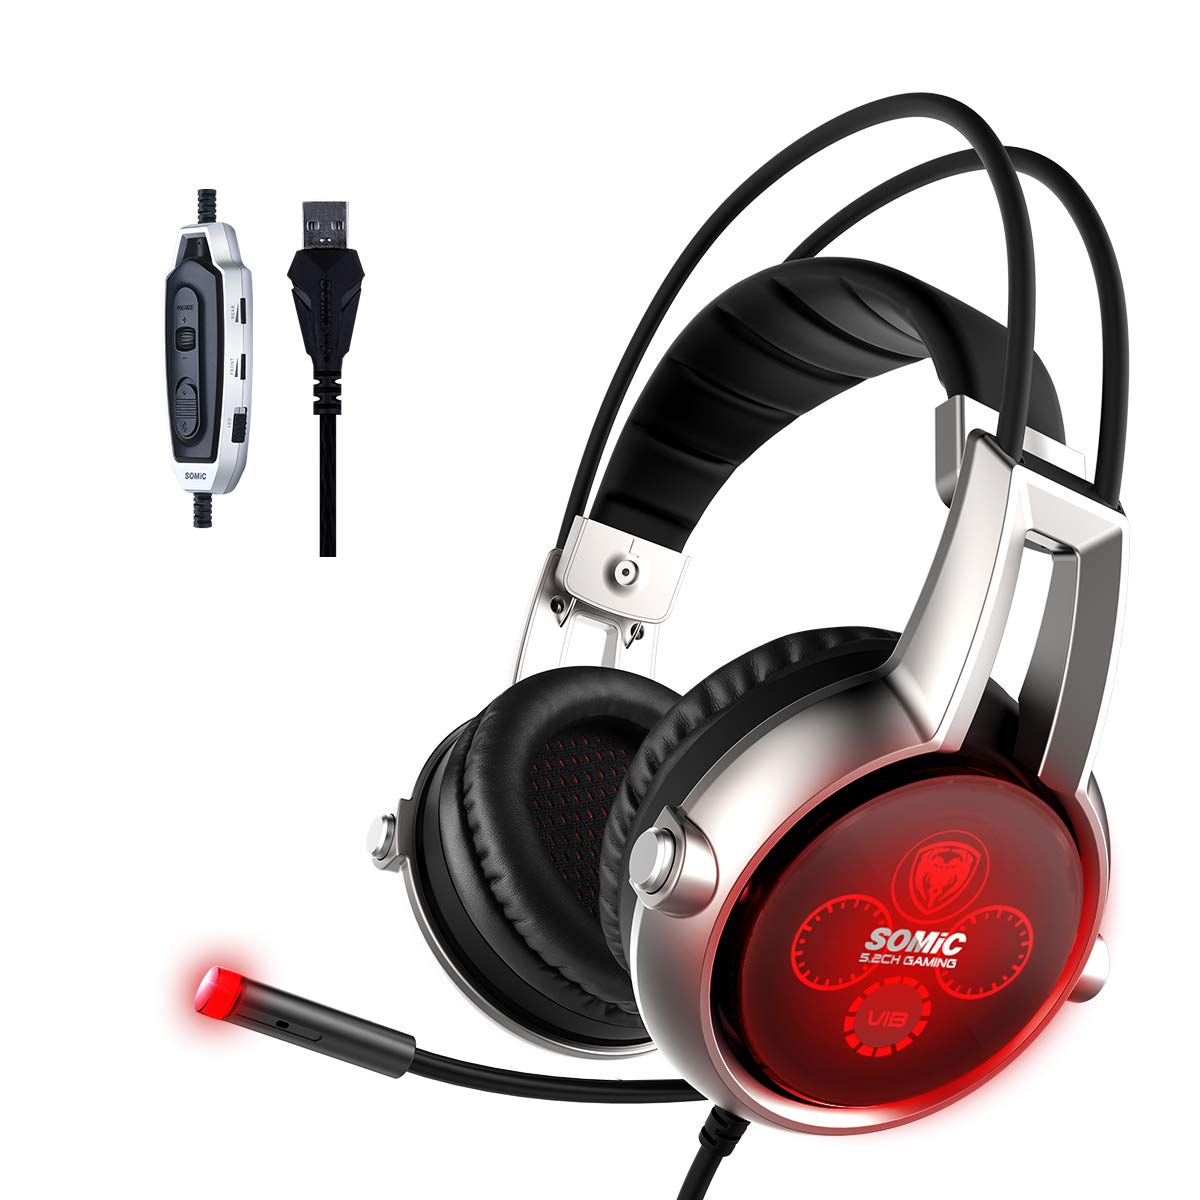 CDM product SOMIC E95X Realistic 5.2 Surround Sound USB Gaming Headset Lightweight Over Ear Headphone with Mic,Volume Control,LED(Black) big image